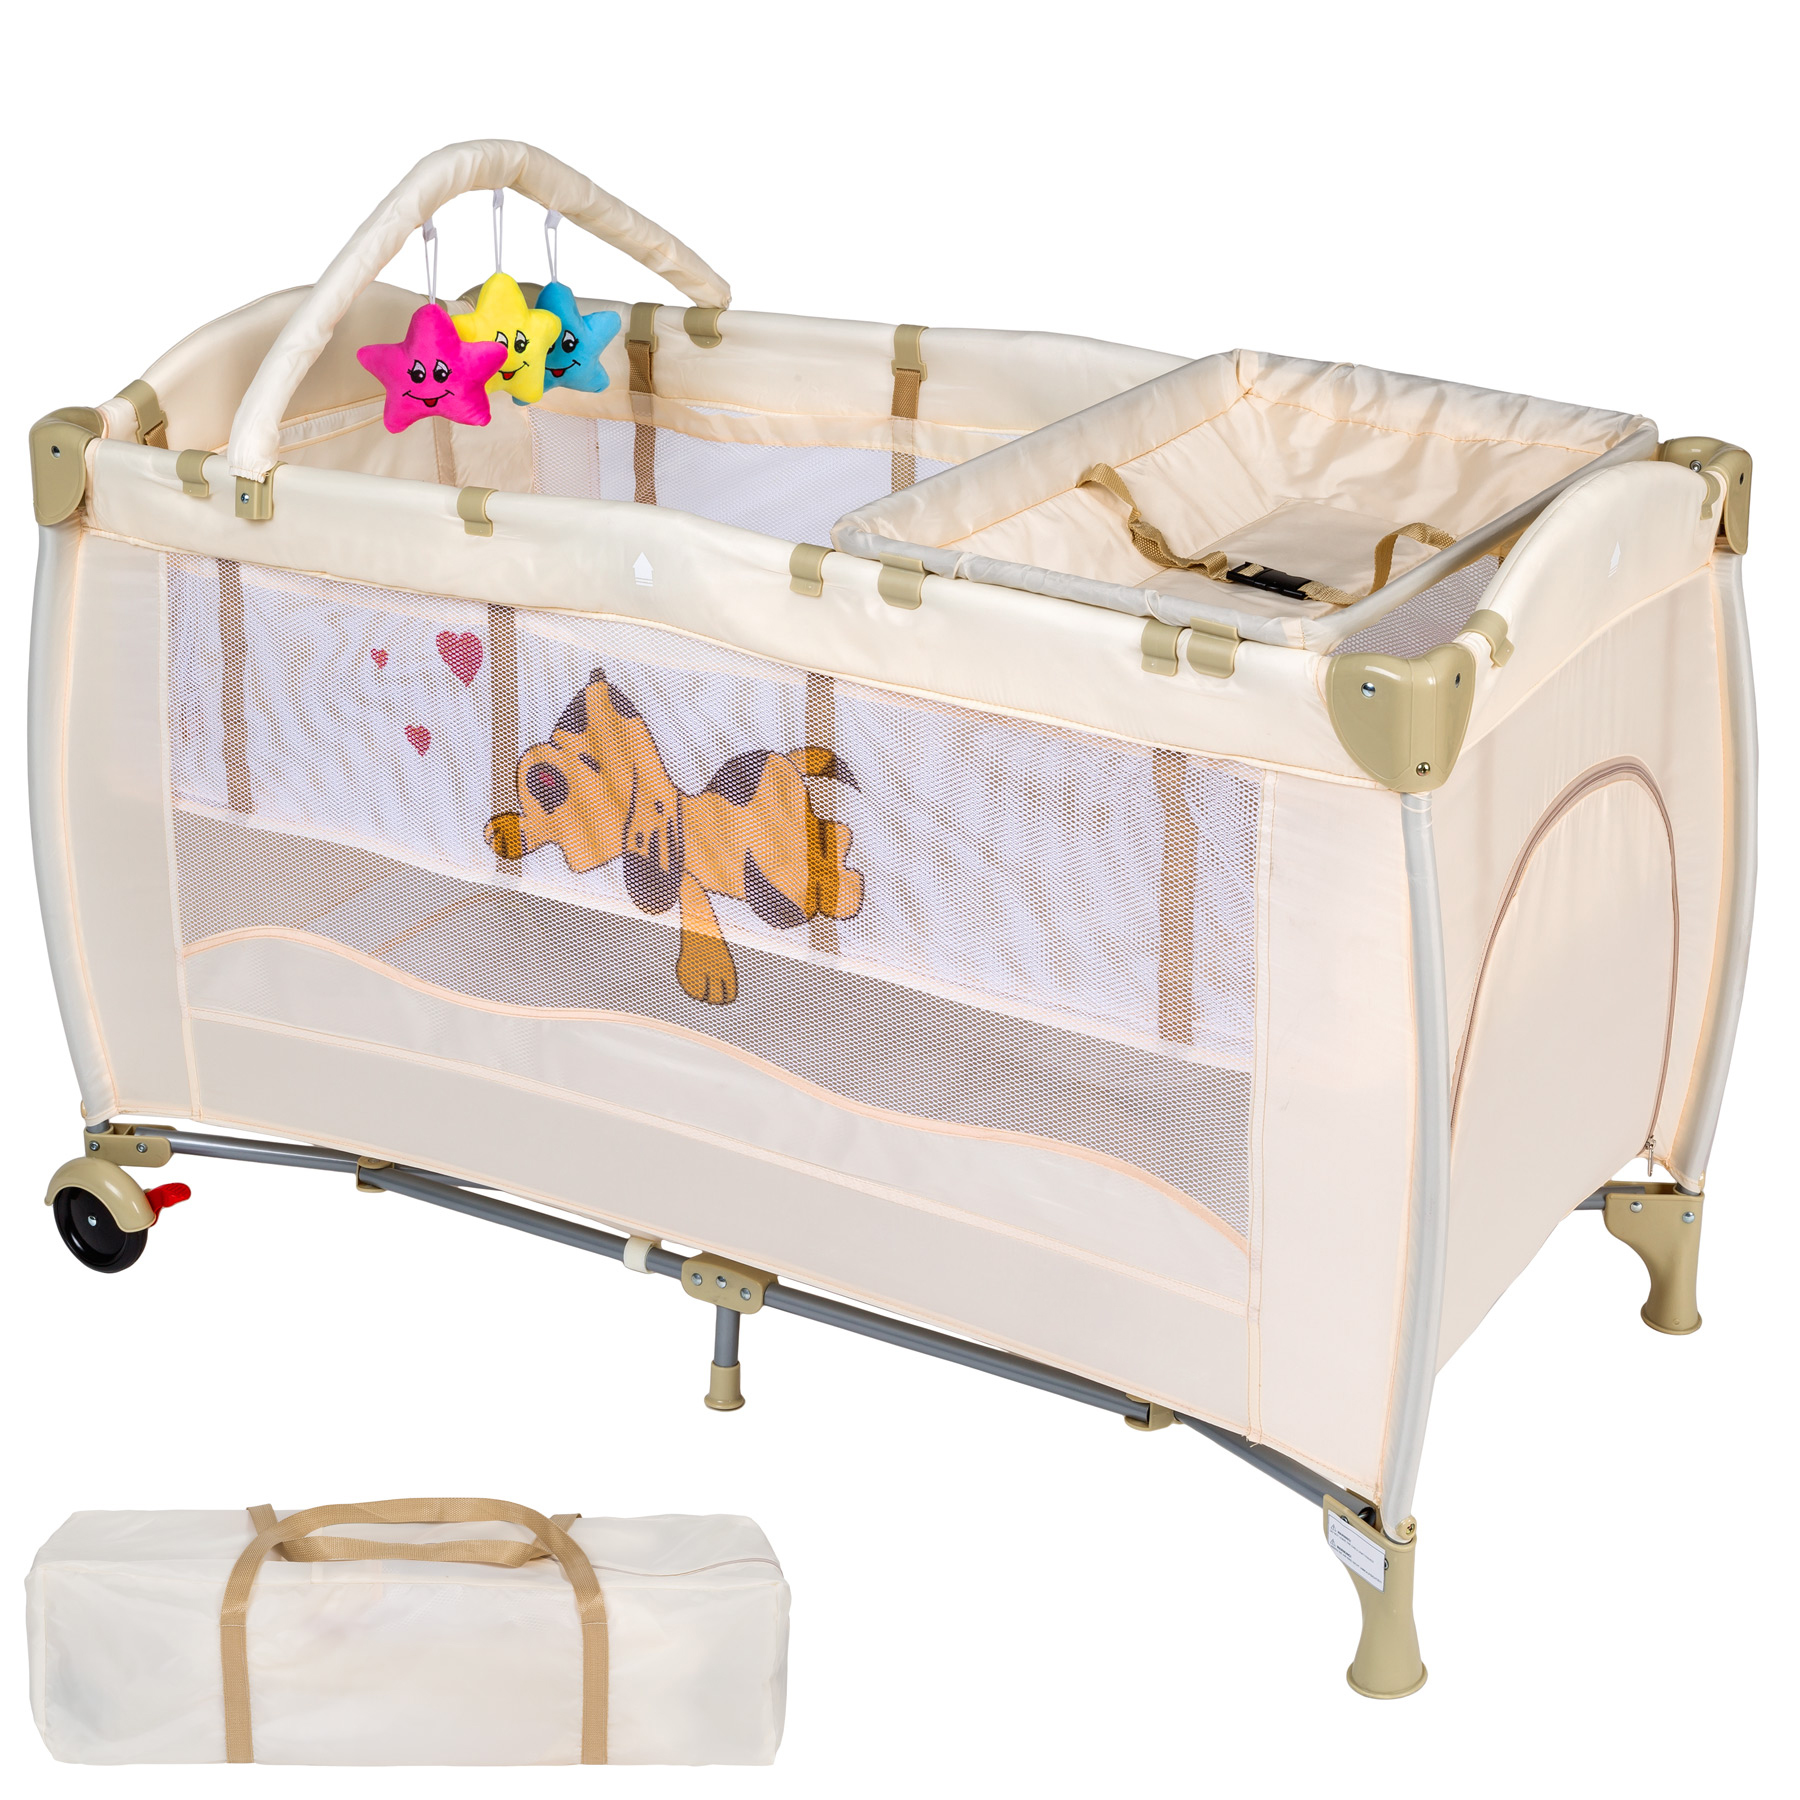 Baby Cradle Travel Bed Baby Cradle Outdoor Portable Multi function Baby Cradle Portable Folding Baby Small Bed Set HWC-in Baby Cribs from Mother & Kids    1